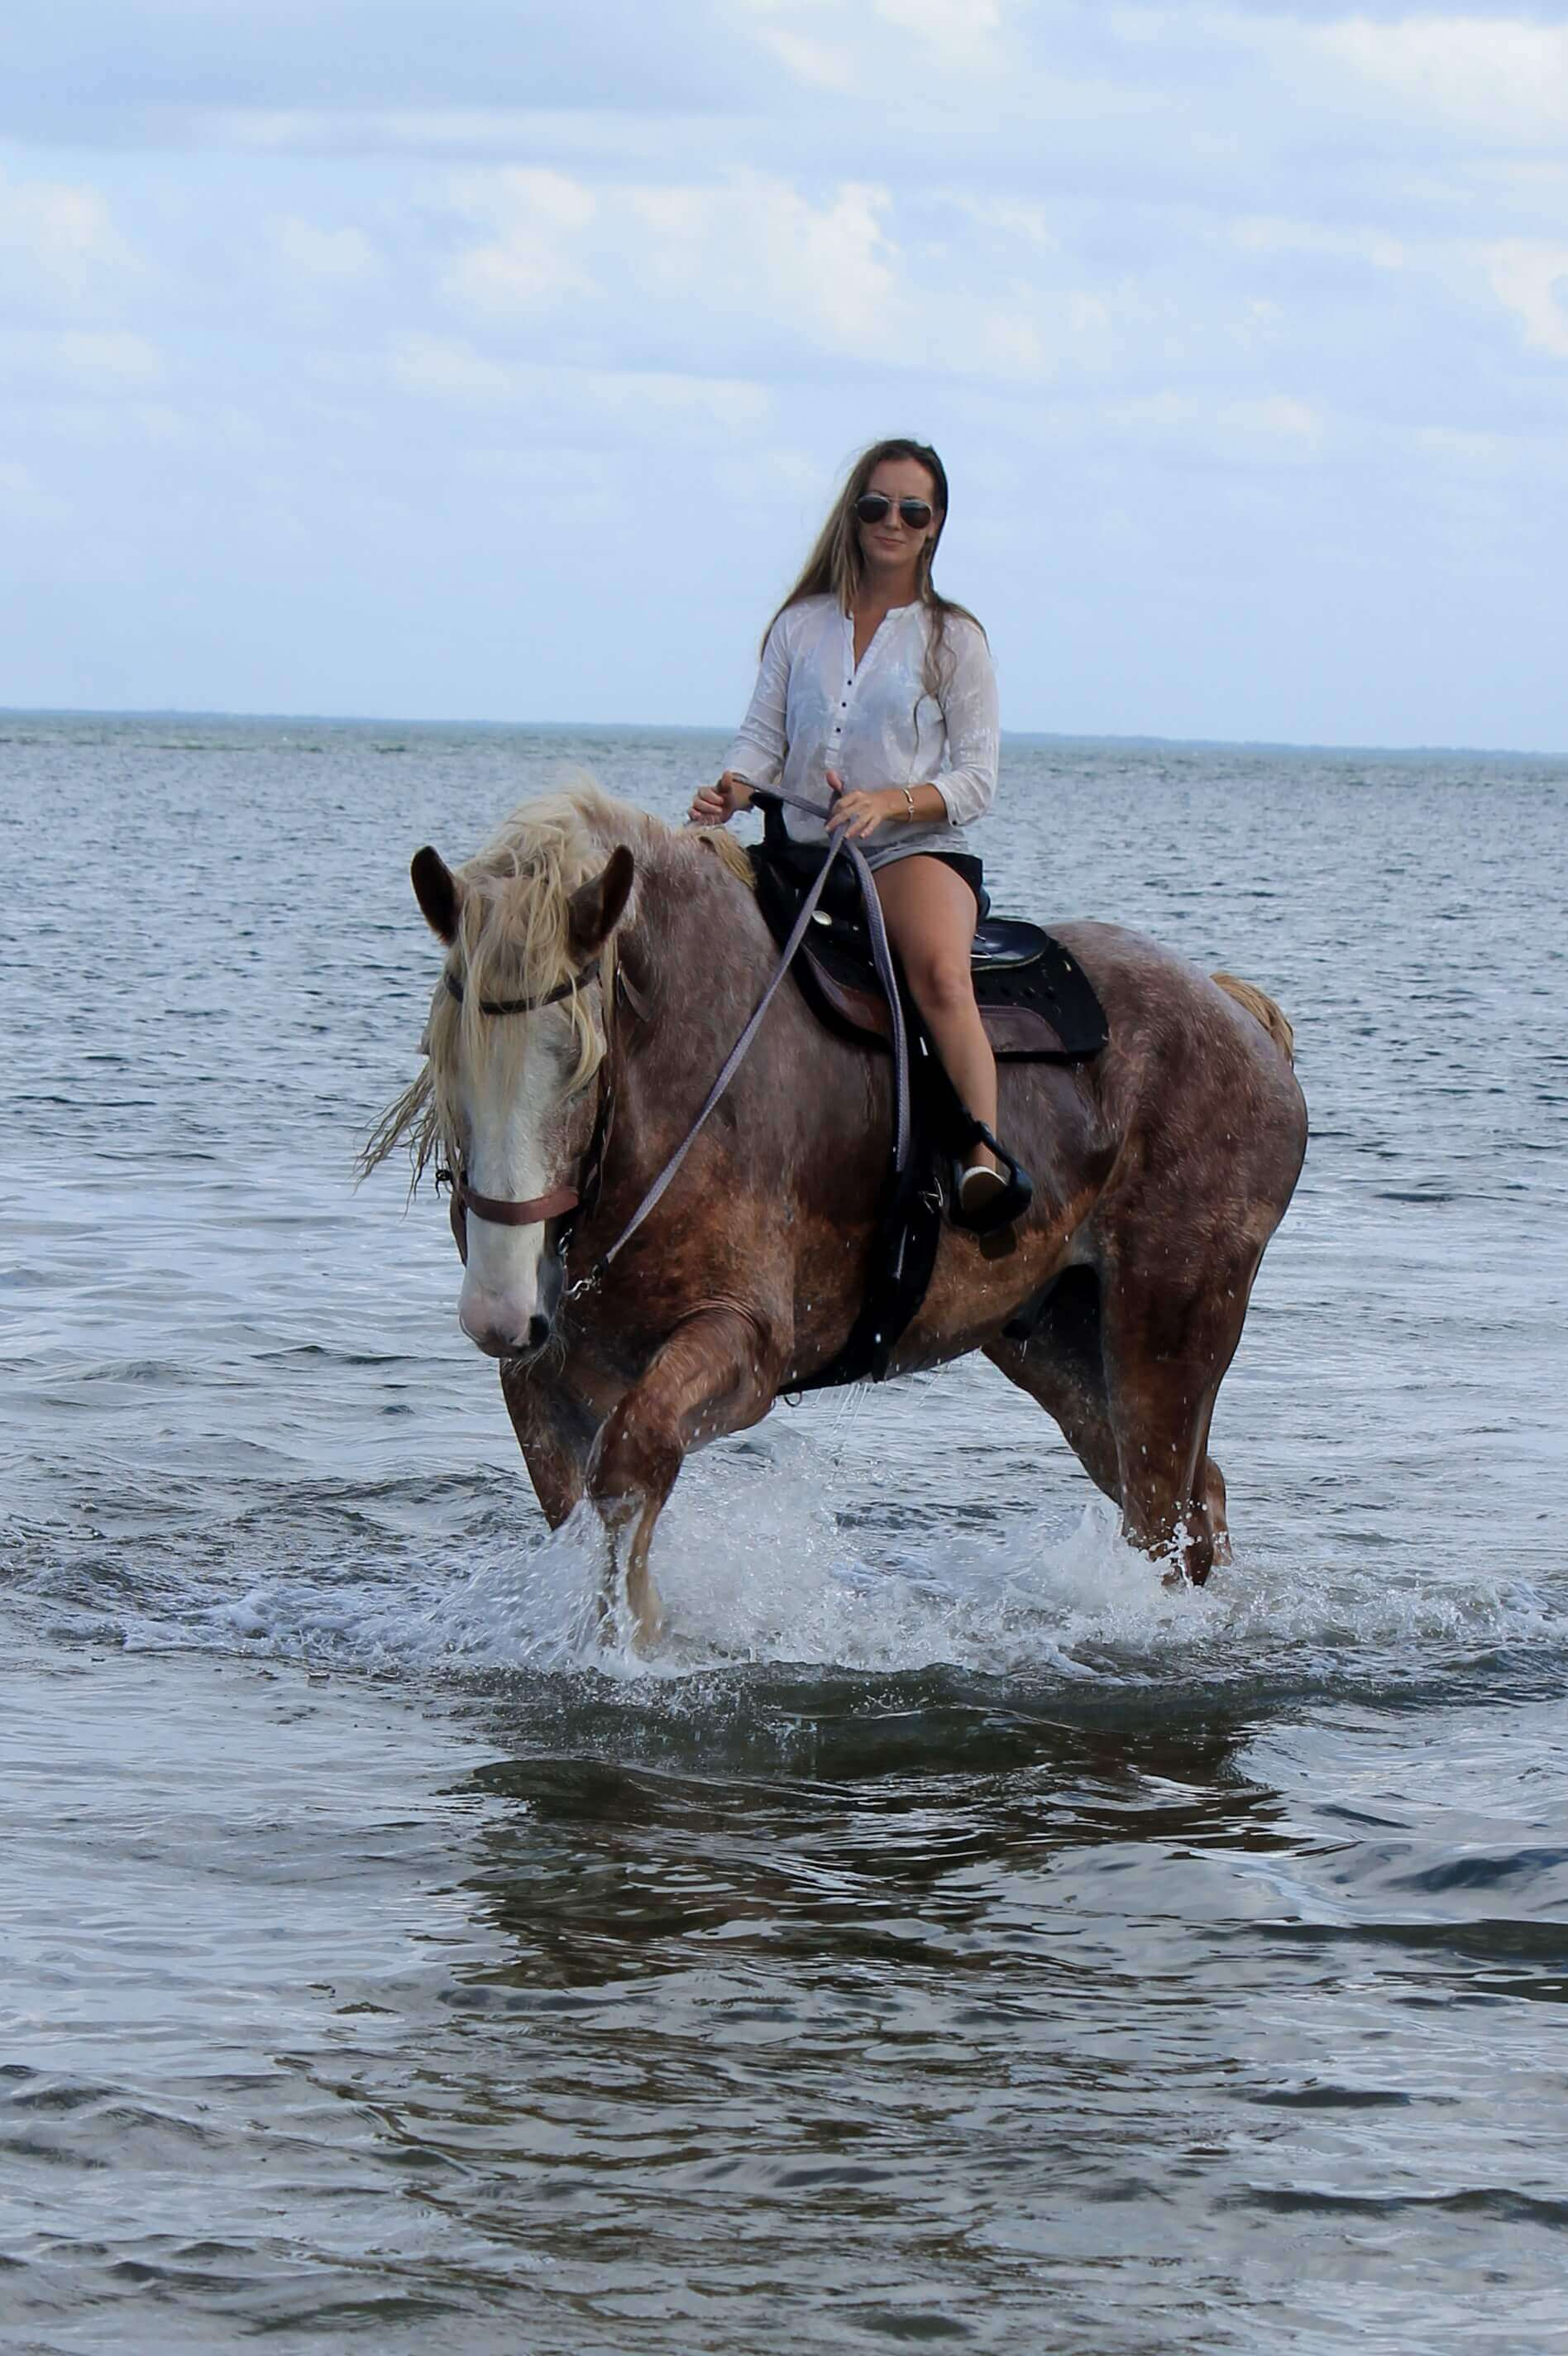 Beach Horseback Riding and Swimming with Horses in Tampa ...